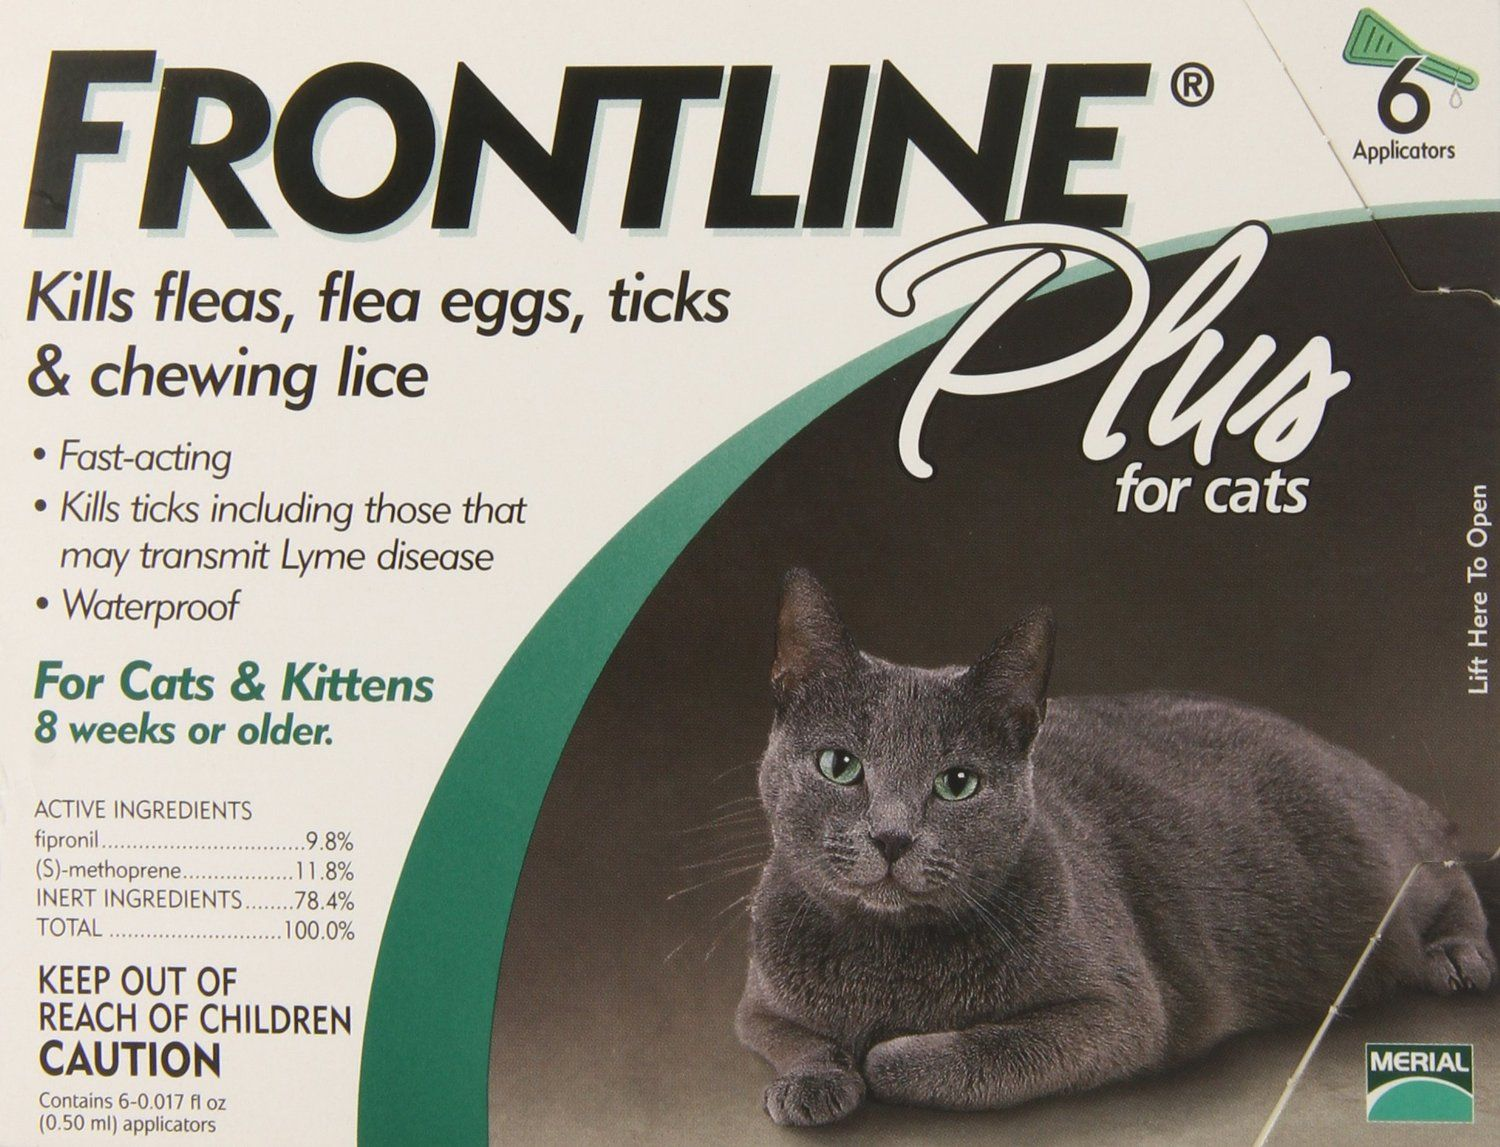 Amazon Com Merial Frontline Plus Flea And Tick Control For Cats And Kittens 6 Doses Pet Flea Drops Pe Cat Fleas Cats And Kittens Frontline Plus For Cats